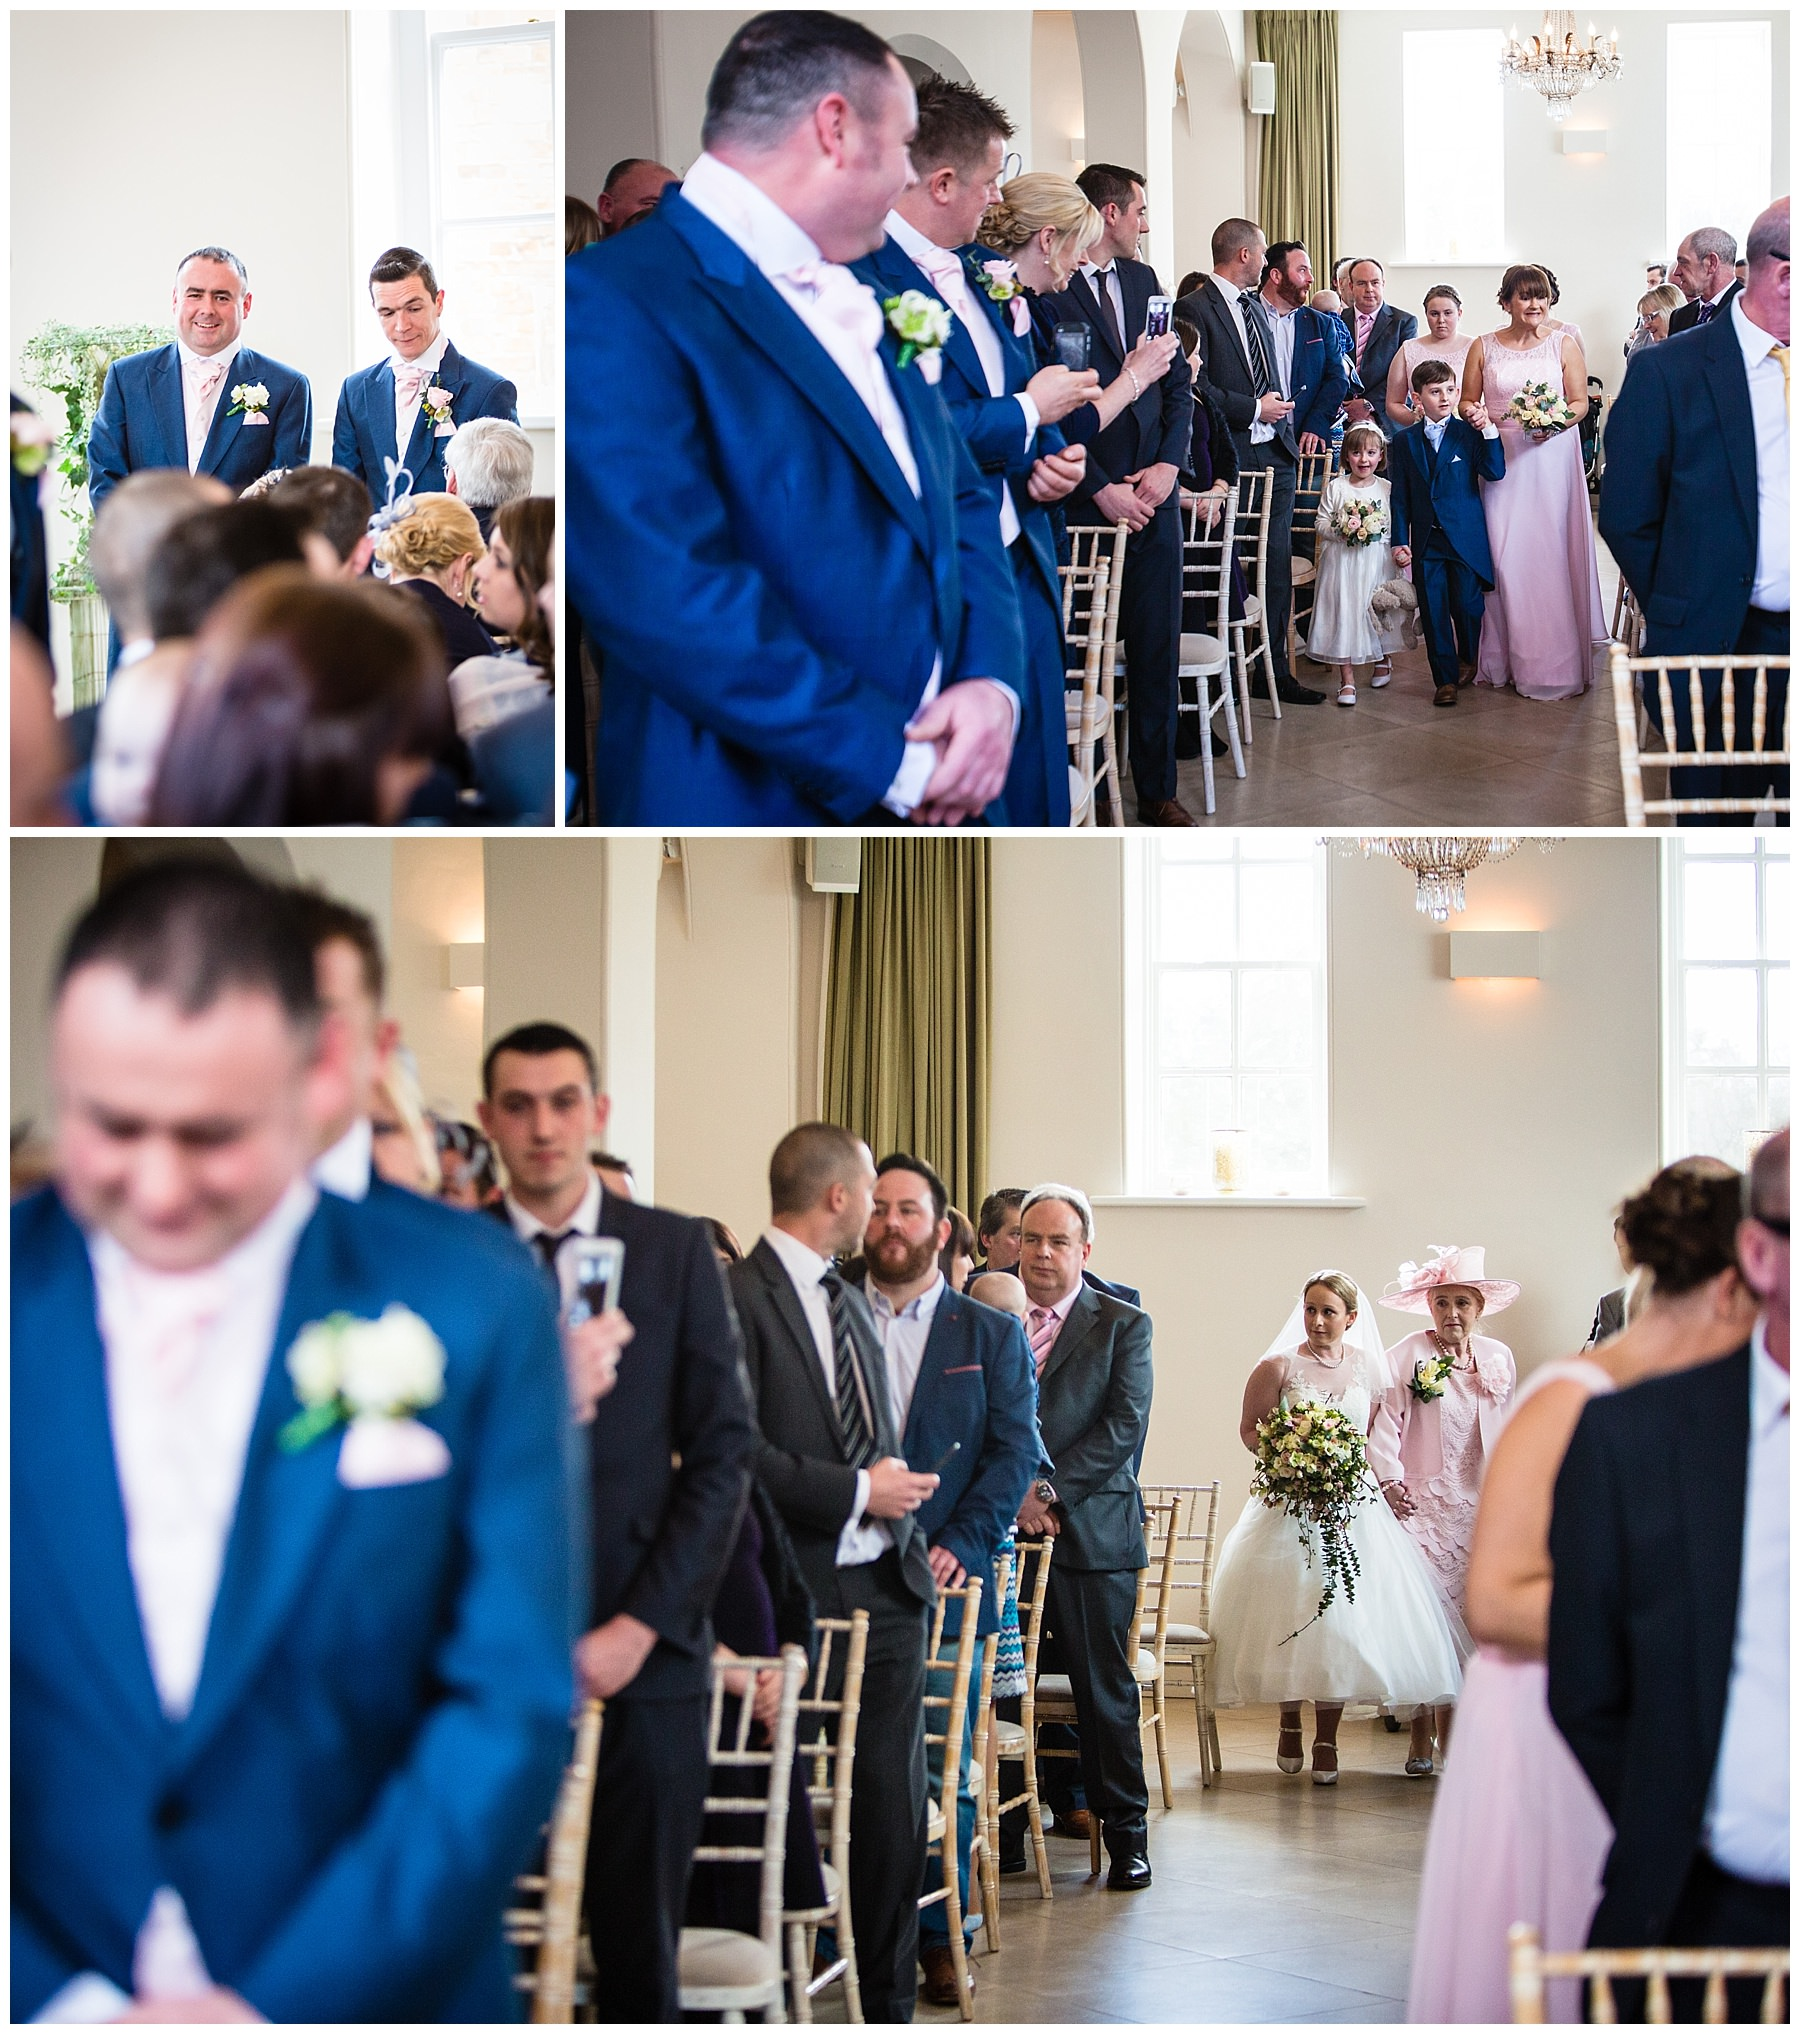 excited groom when awaiting the arrival of the bride and groom and the bridal party walking down the aisle at iscoyd park